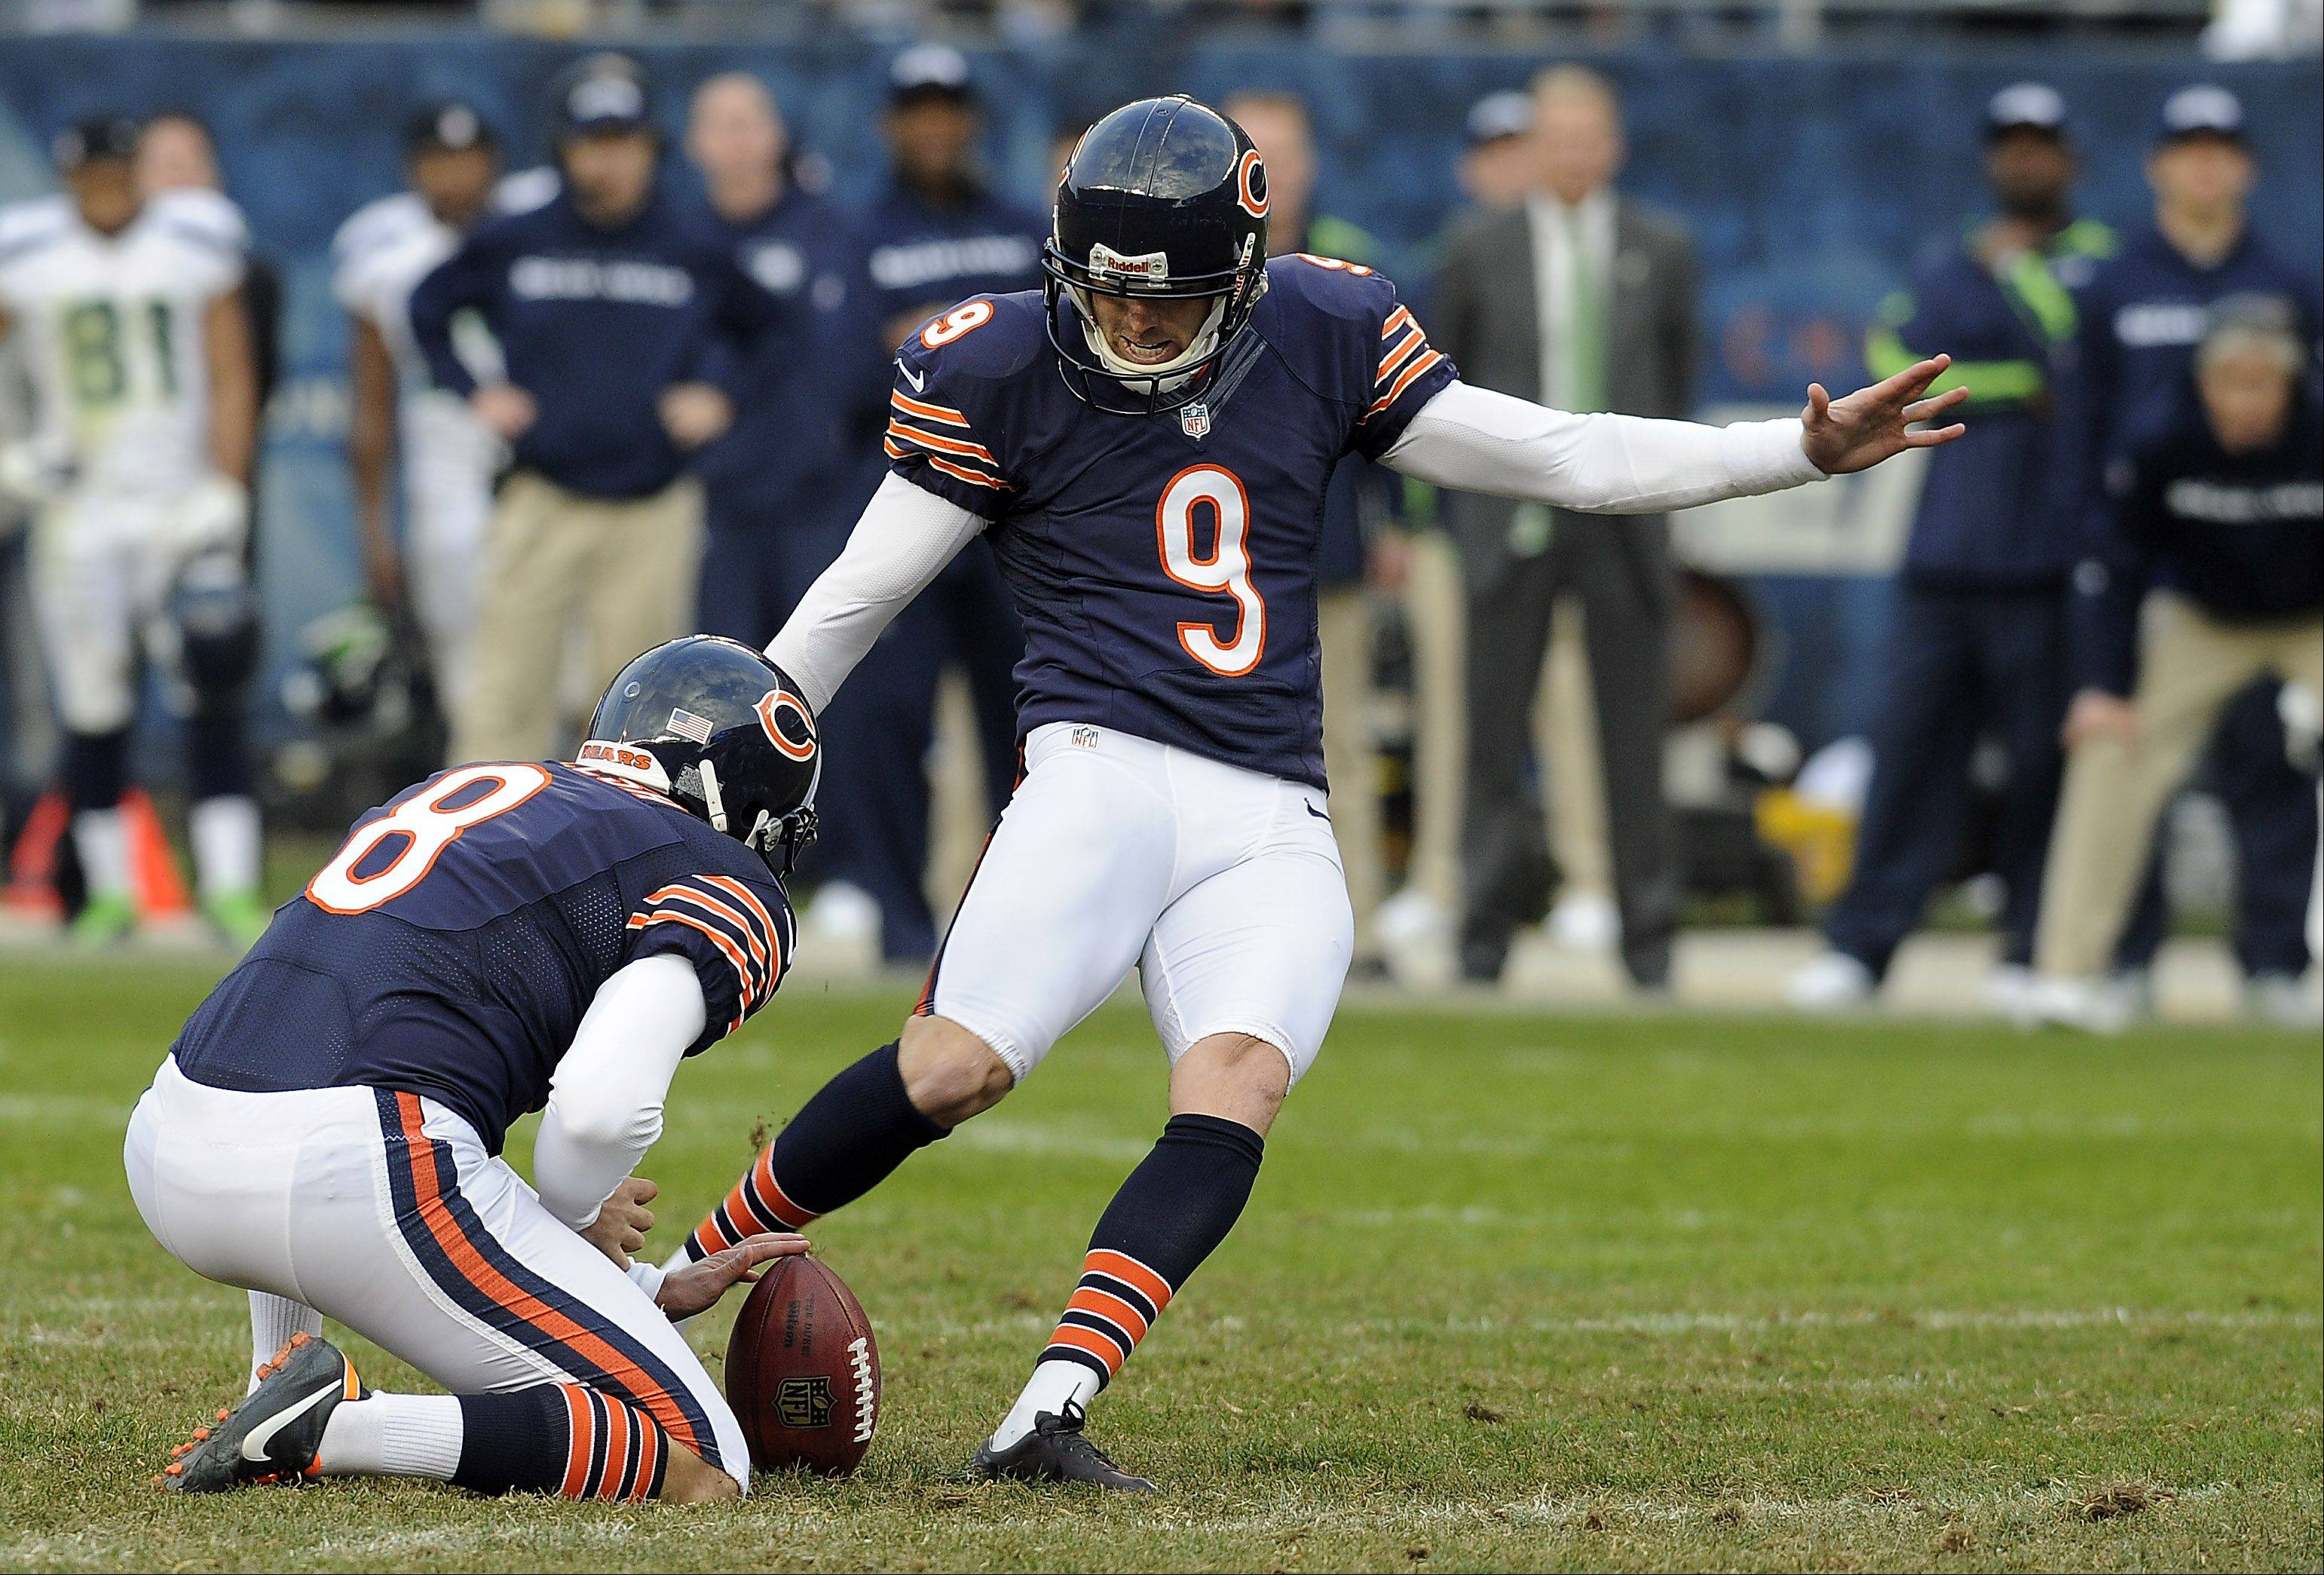 The Bears placed kicker Robbie Gould (9) on injured reserve Tuesday and signed NFL veteran Olindo Mare as a replacement.